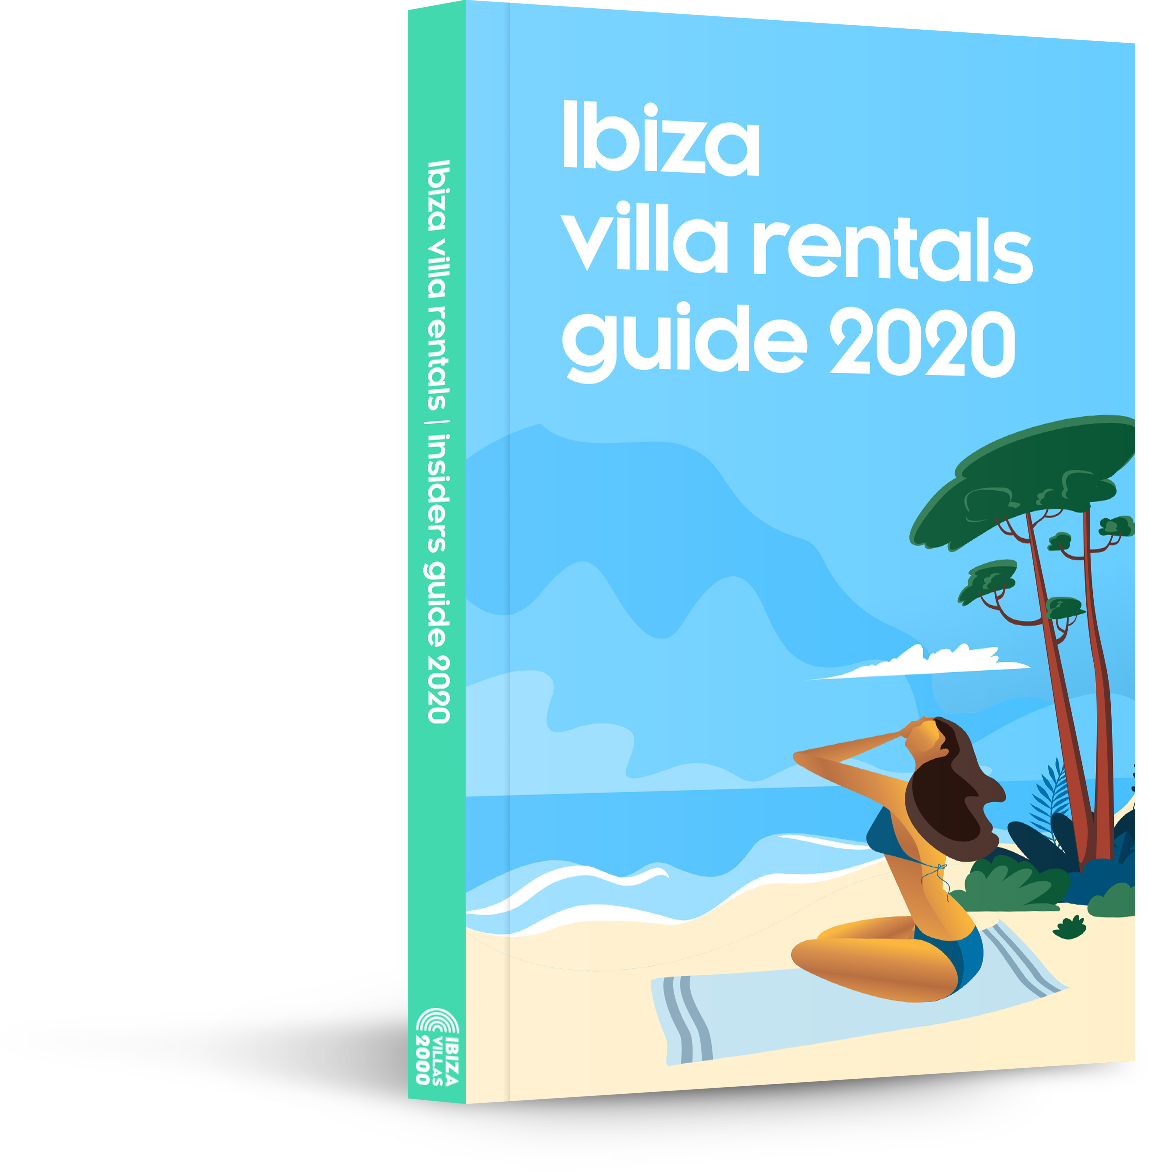 Ibiza Villa Rental Guide 2020 Book